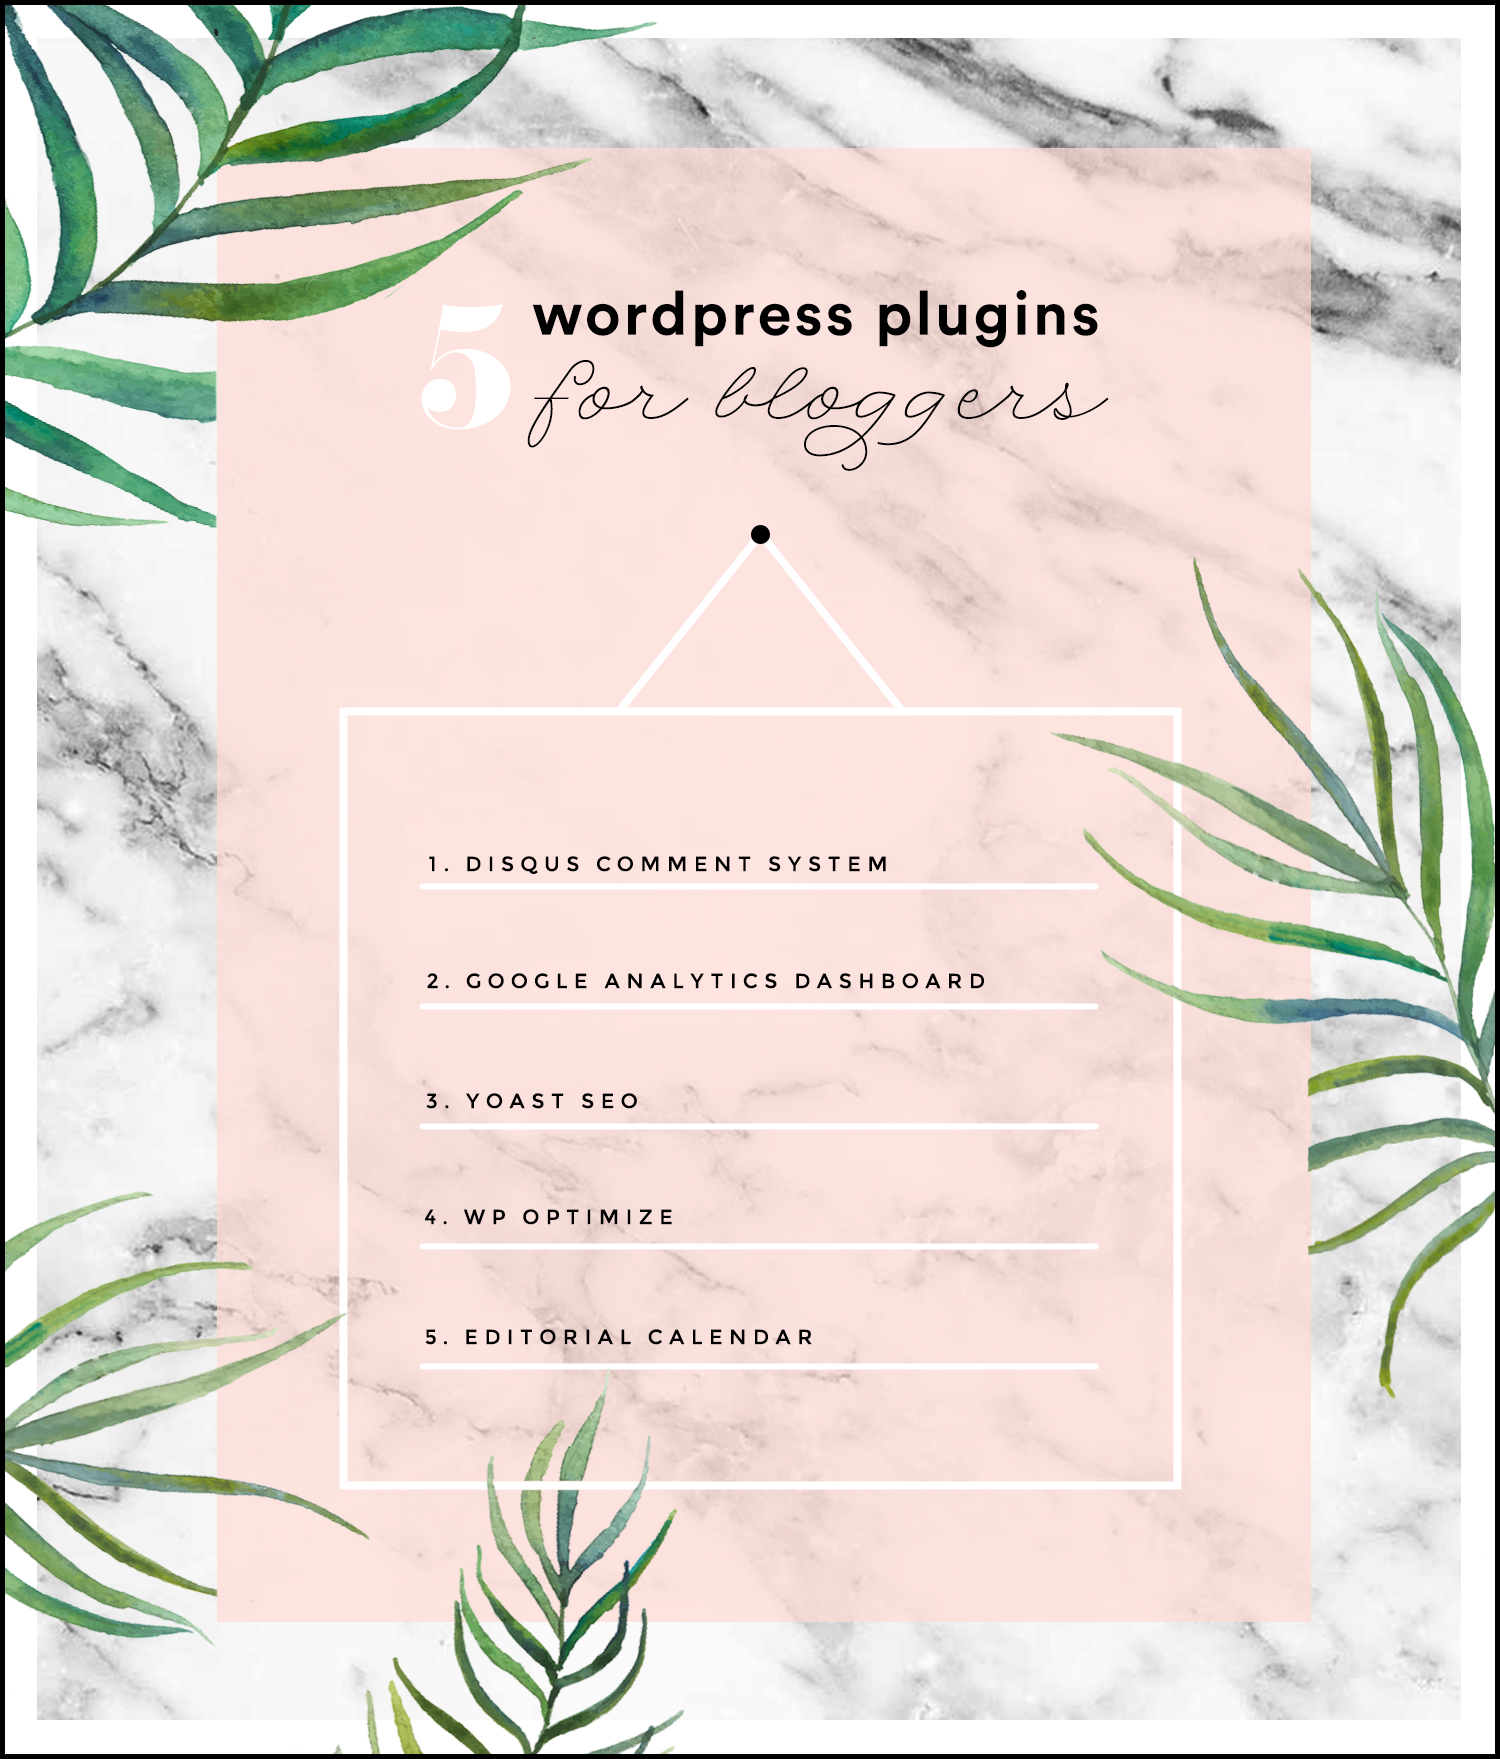 fashionlush, WordPress Plugins for Bloggers, blogger tips